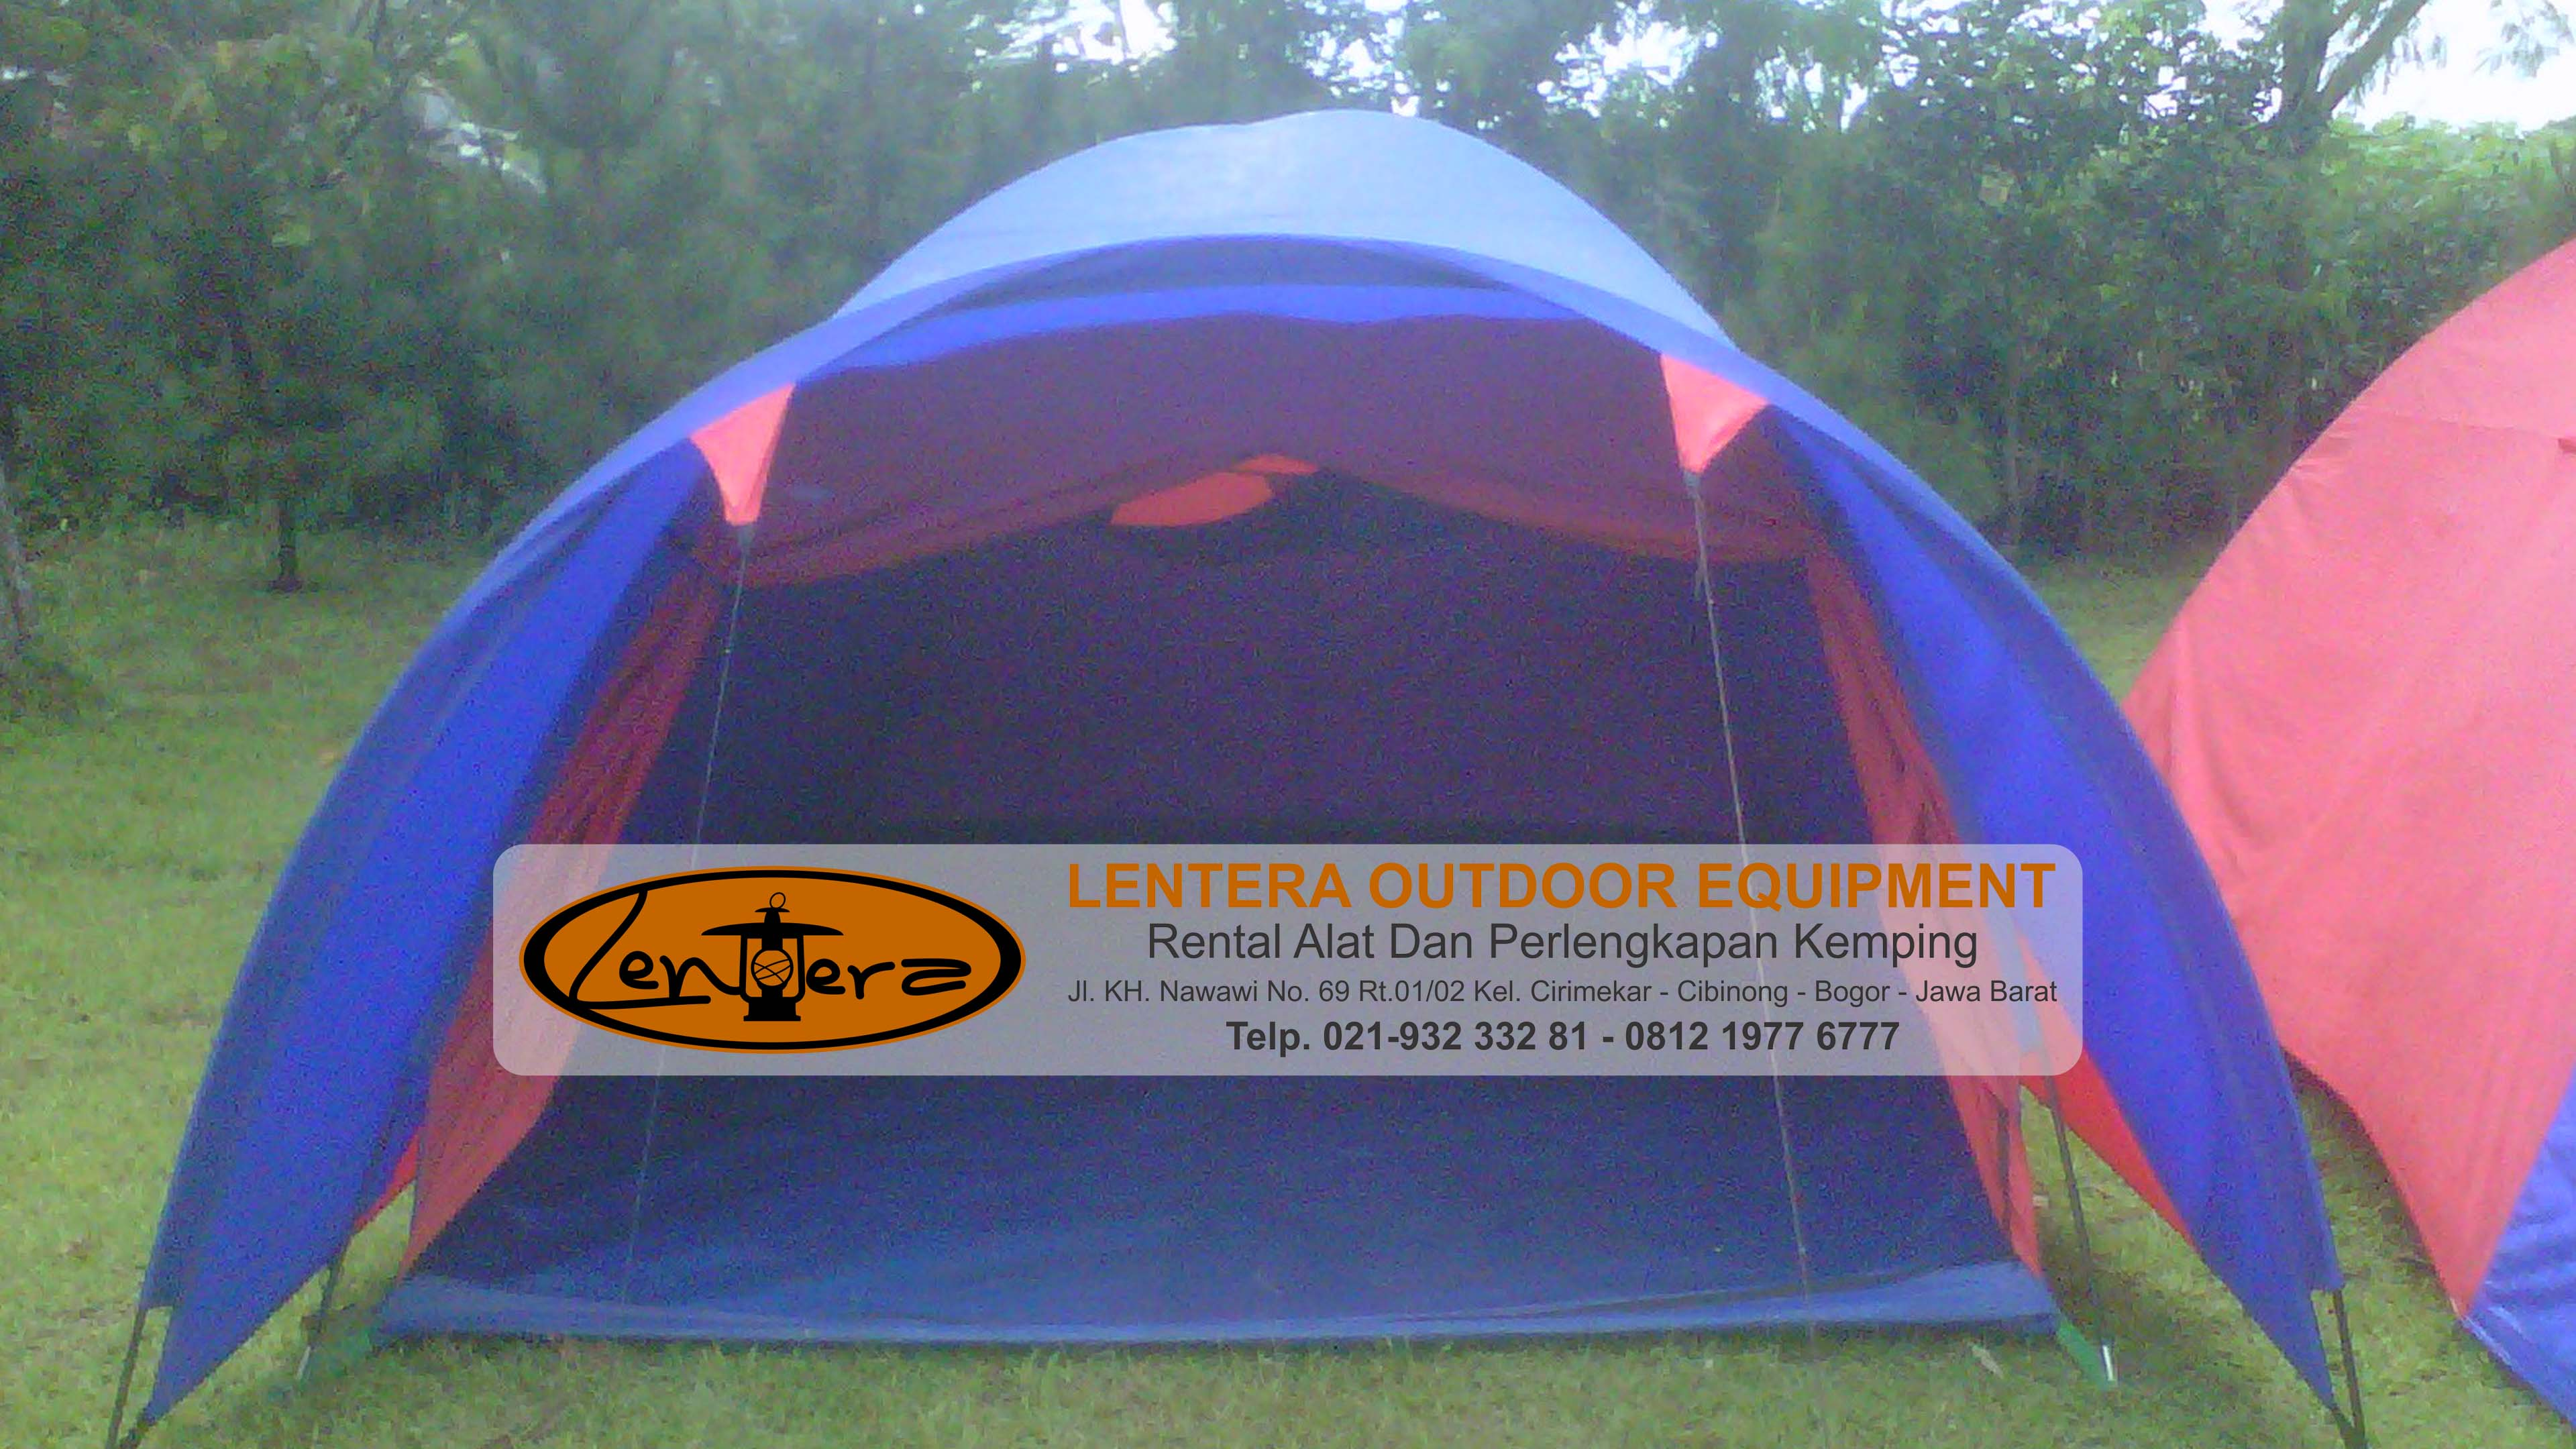 Rental Tenda Dome Pangrango - Lentera Outdoor Equipment